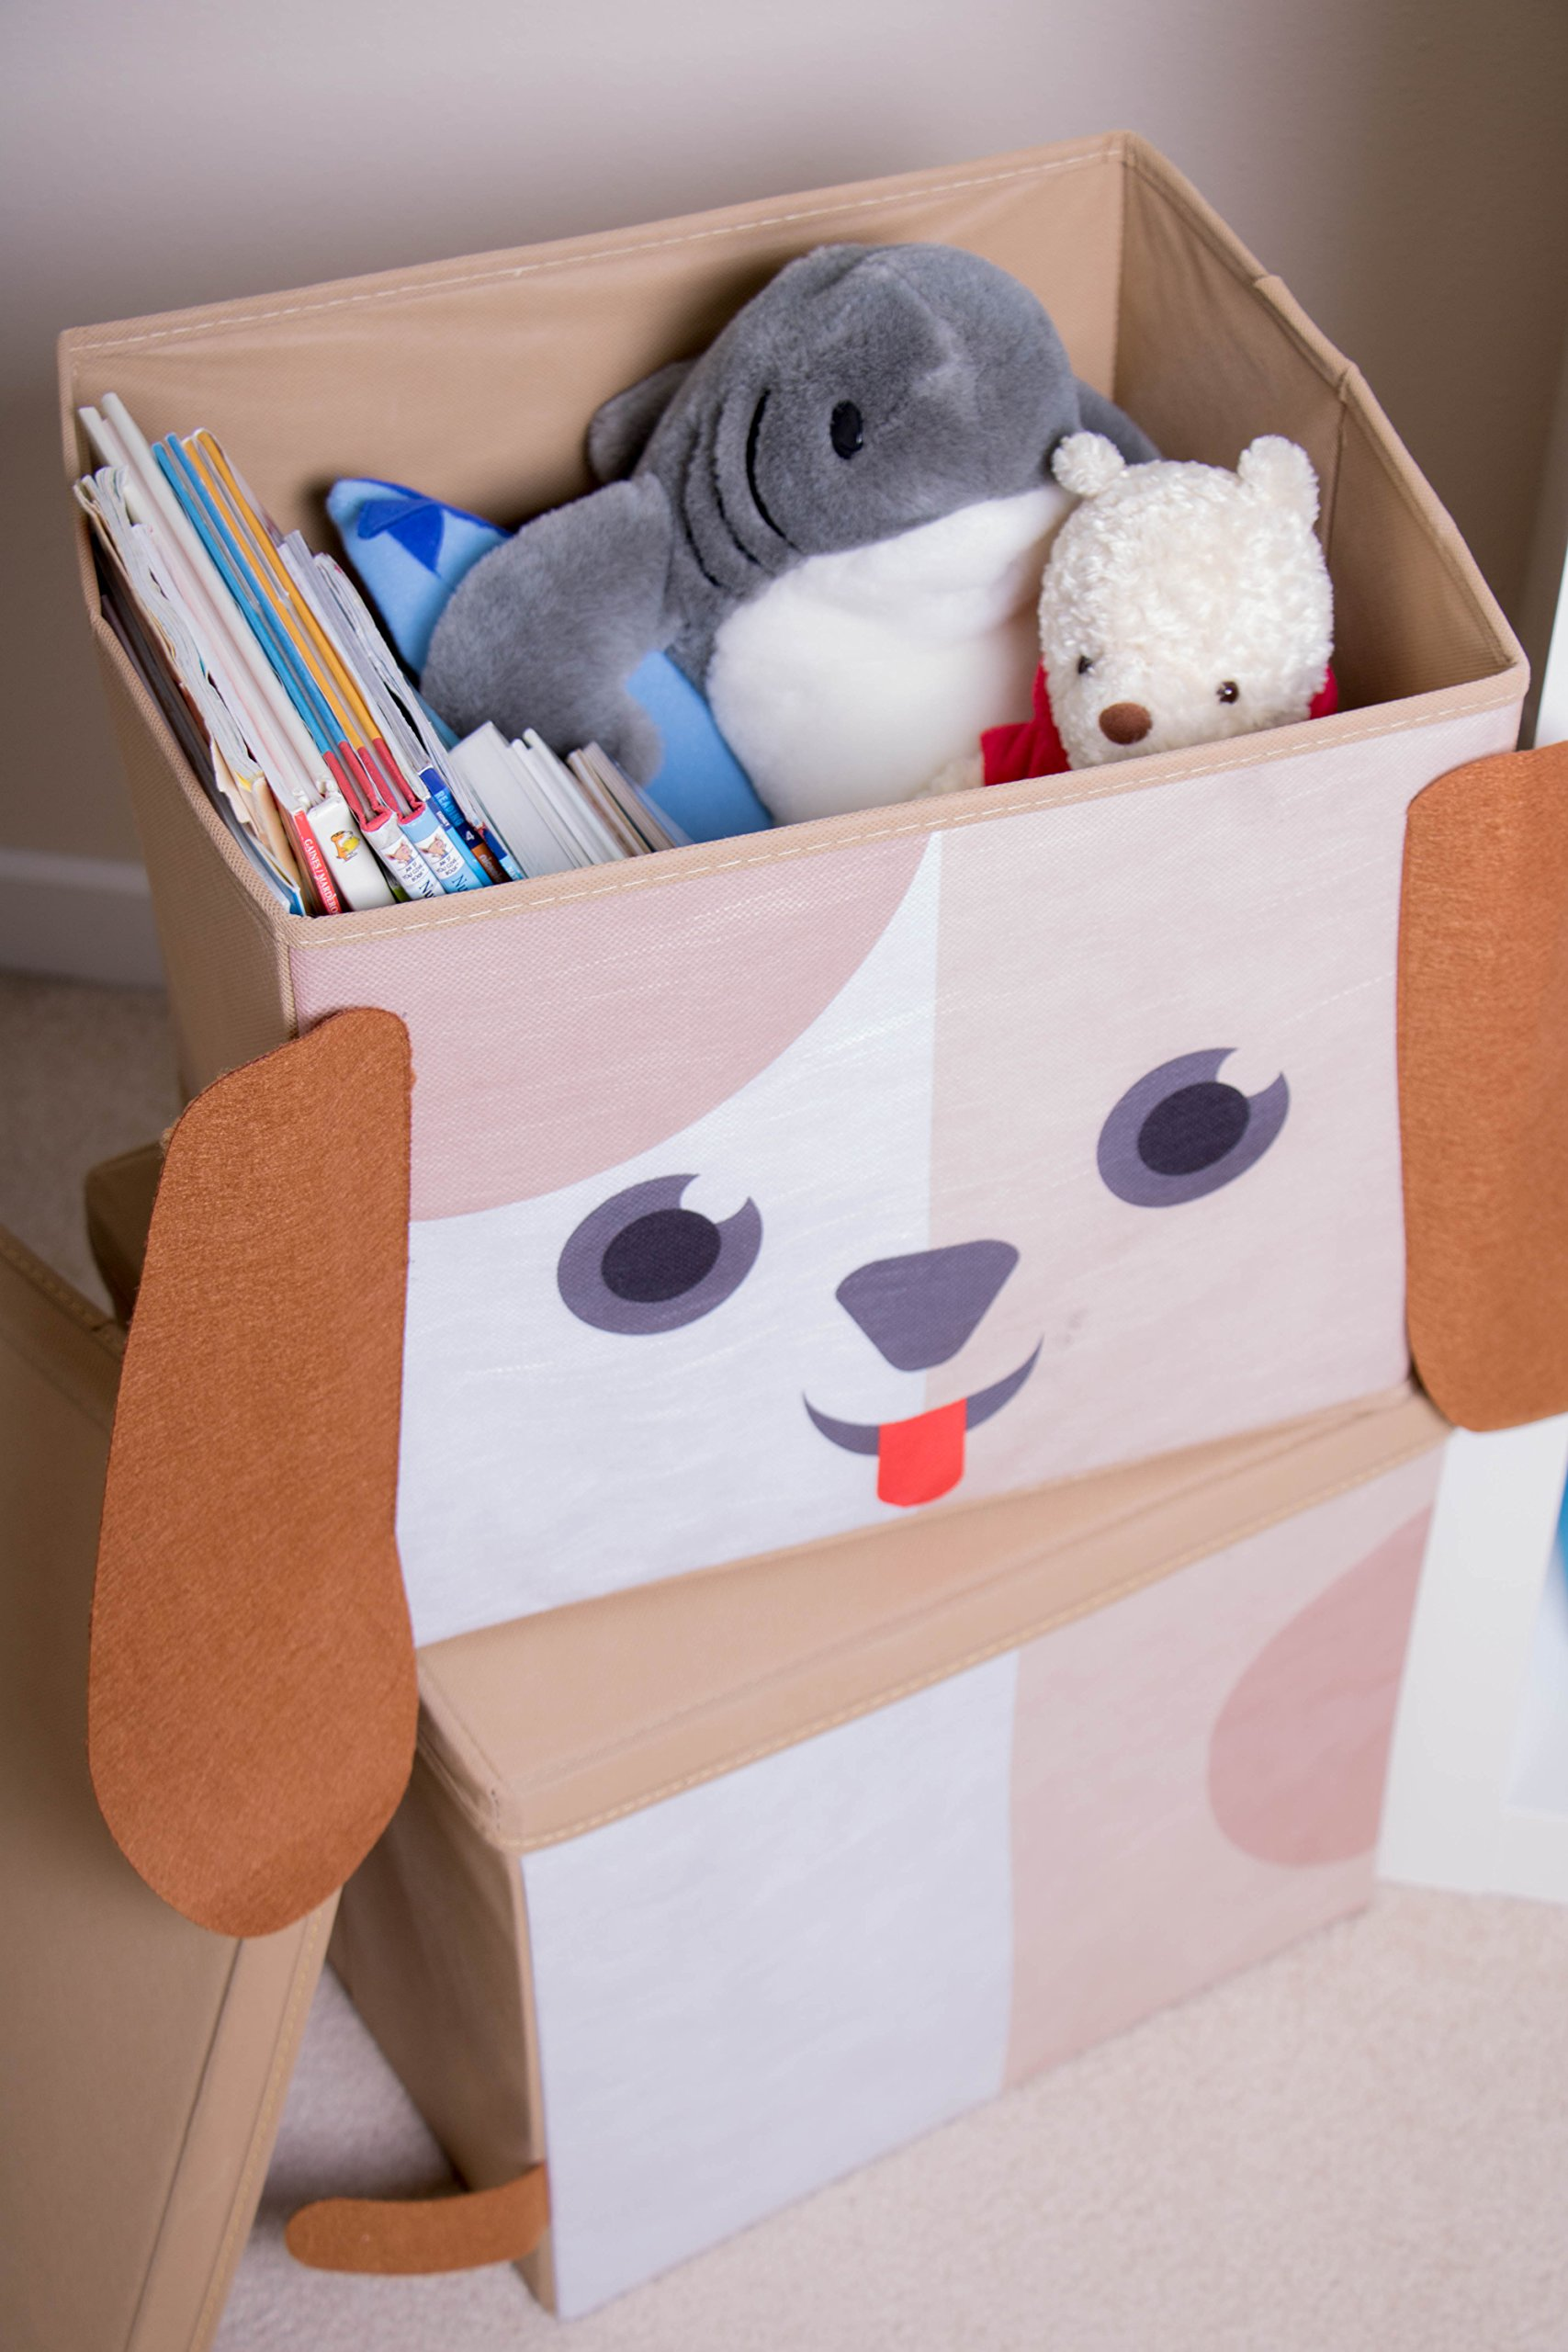 Cute Dog Stackable Storage Organizer by Clever Creations | Collapsible Storage Box Any Room | Perfect Size Chest for Organizing Dog Toys, Clothes, Shoes and More! by Clever Creations (Image #6)